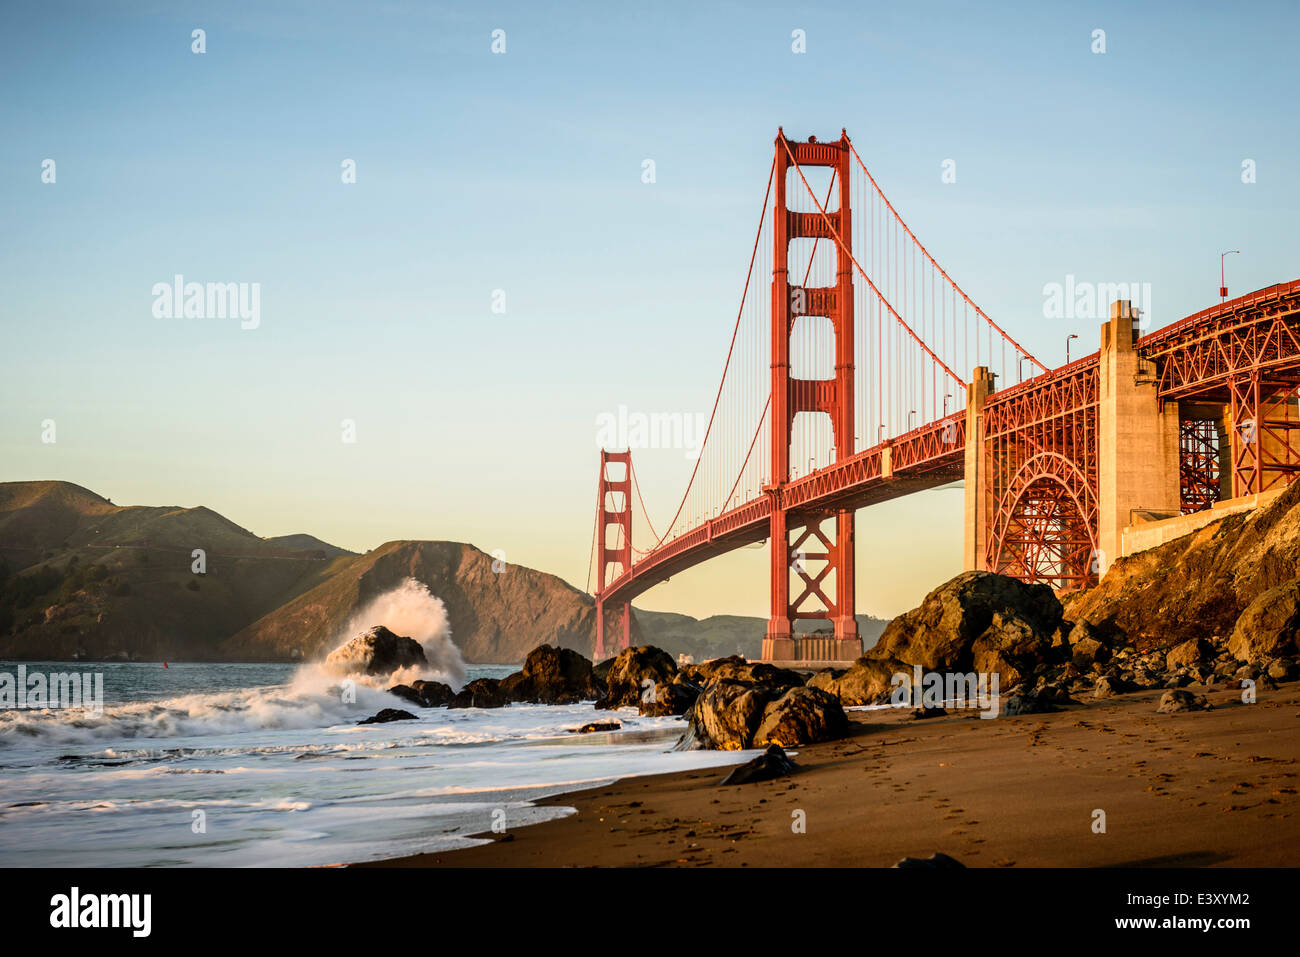 Vista del Golden Gate Bridge da spiaggia, San Francisco, California, Stati Uniti Immagini Stock